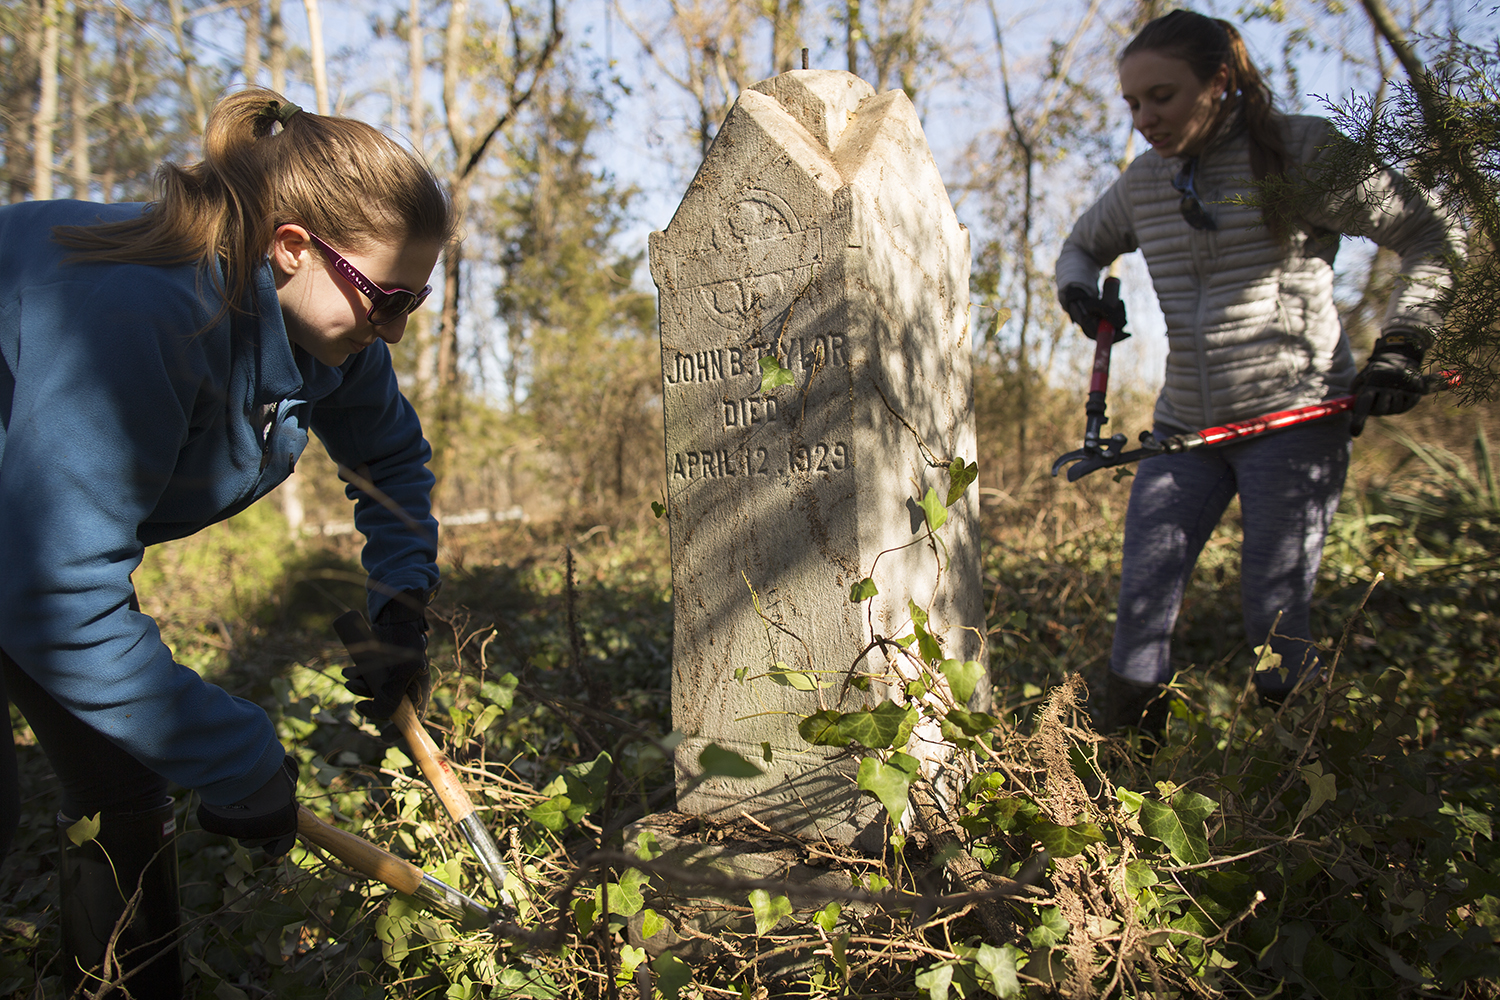 VCU students clear Taylor family burial plot at East End Cemetery, Henrico County/Richmond, Virginia, January 31, 2015. ©brianpalmer.photos 2015